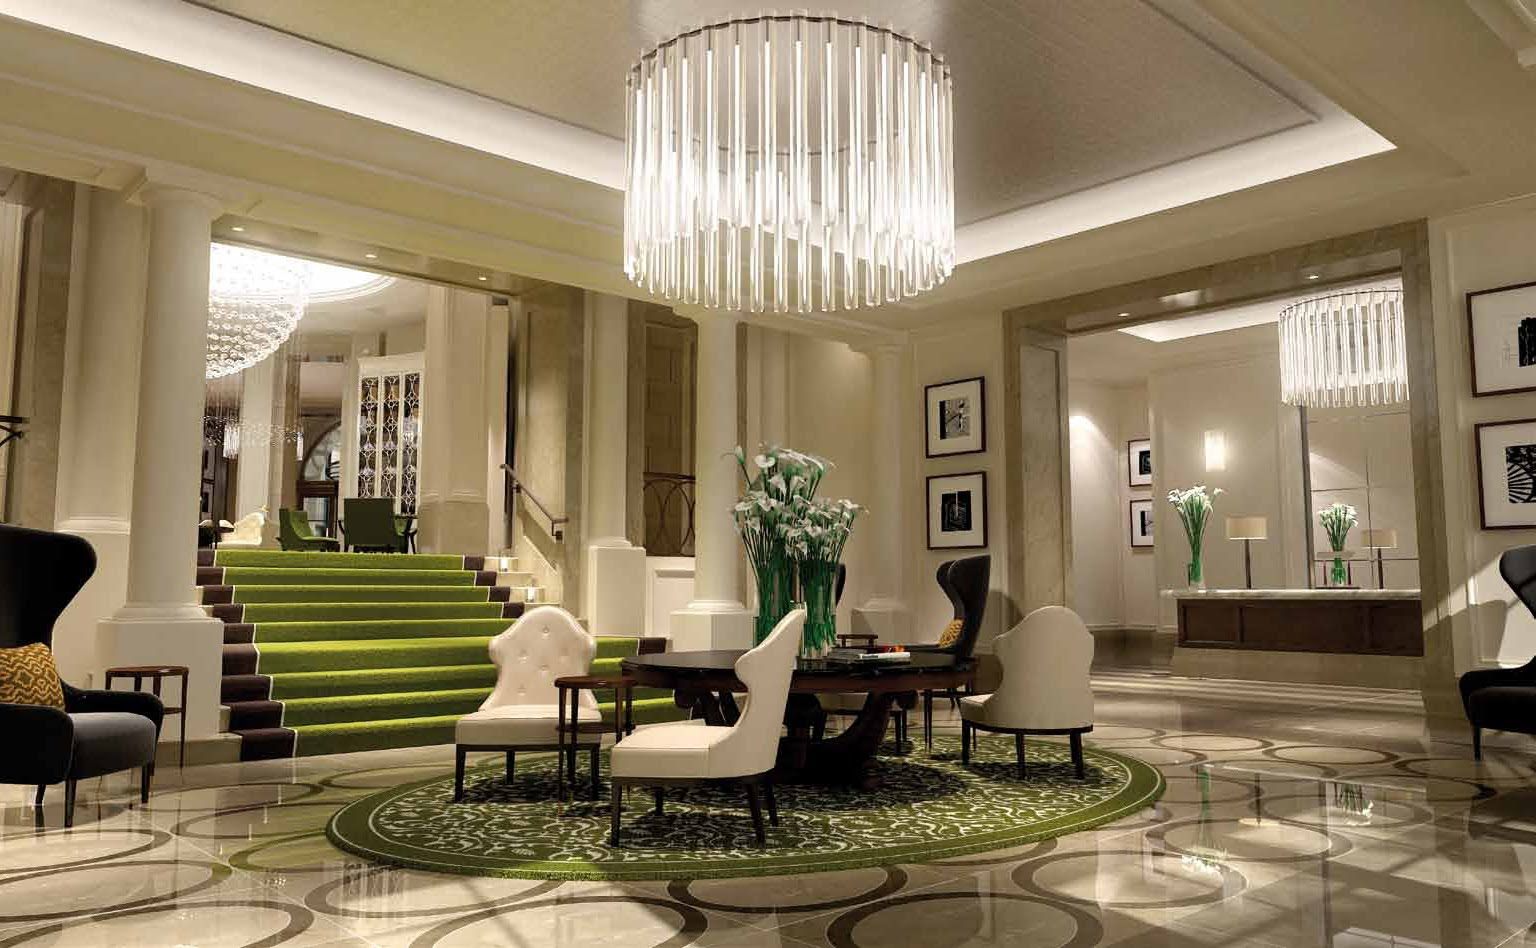 Virtuoso hotels corinthia hotel in london opens with for House boutique hotel dubai